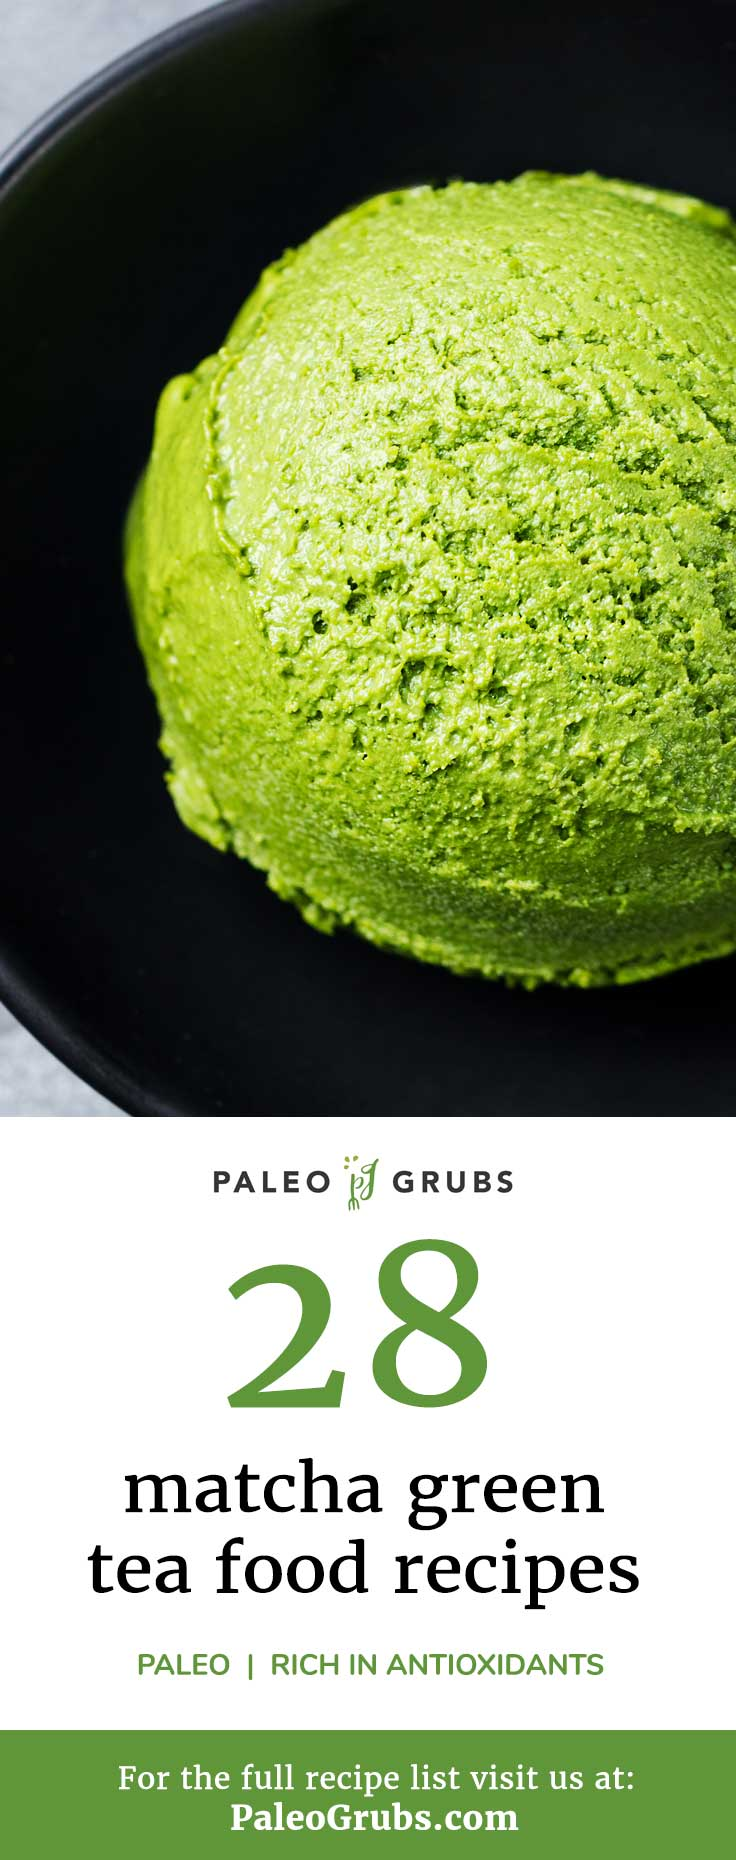 Matcha tea is one of my favorite drinks when I need a quick energy boost, and these matcha baked goods, desserts and snacks bring matcha to another level! So yummy and good for you.